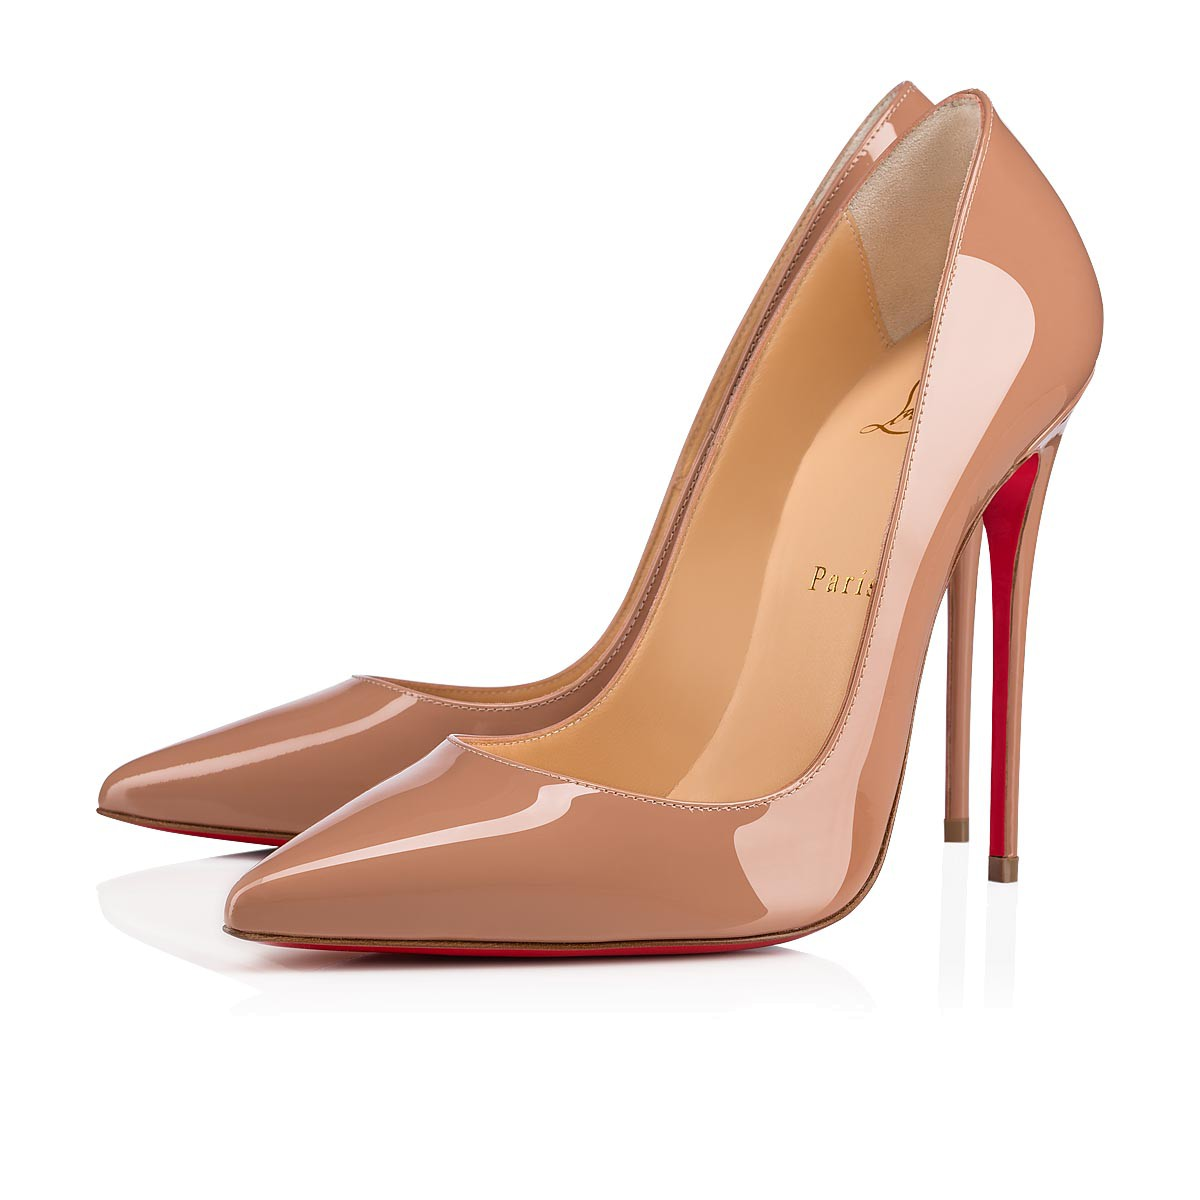 So Kate 120 Nude Patent Leather - Women Shoes - Christian Louboutin f6f3be48ec